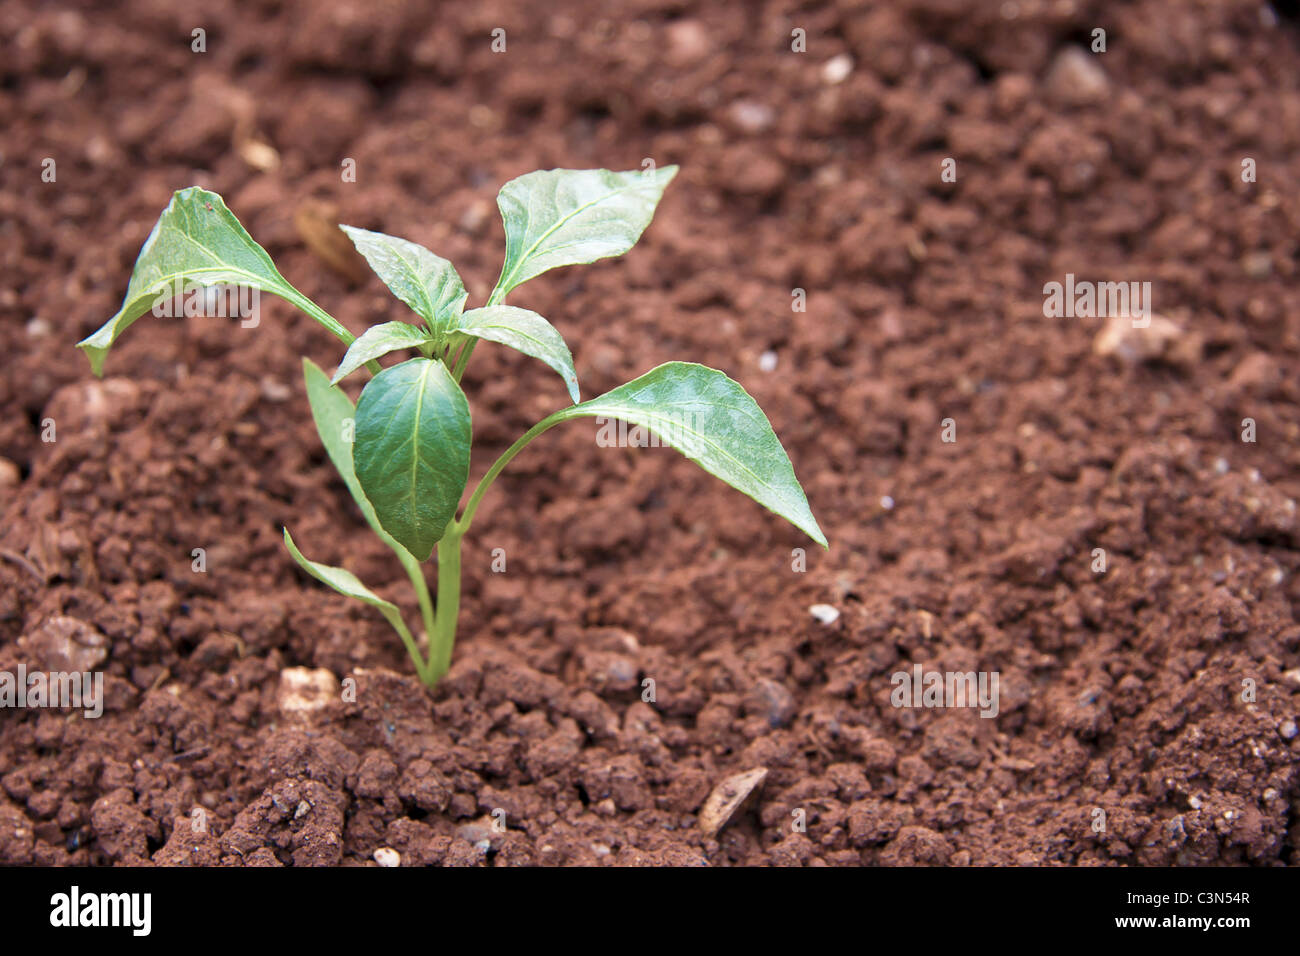 Young vegetable plant is growing on it's natural environment Stock Photo